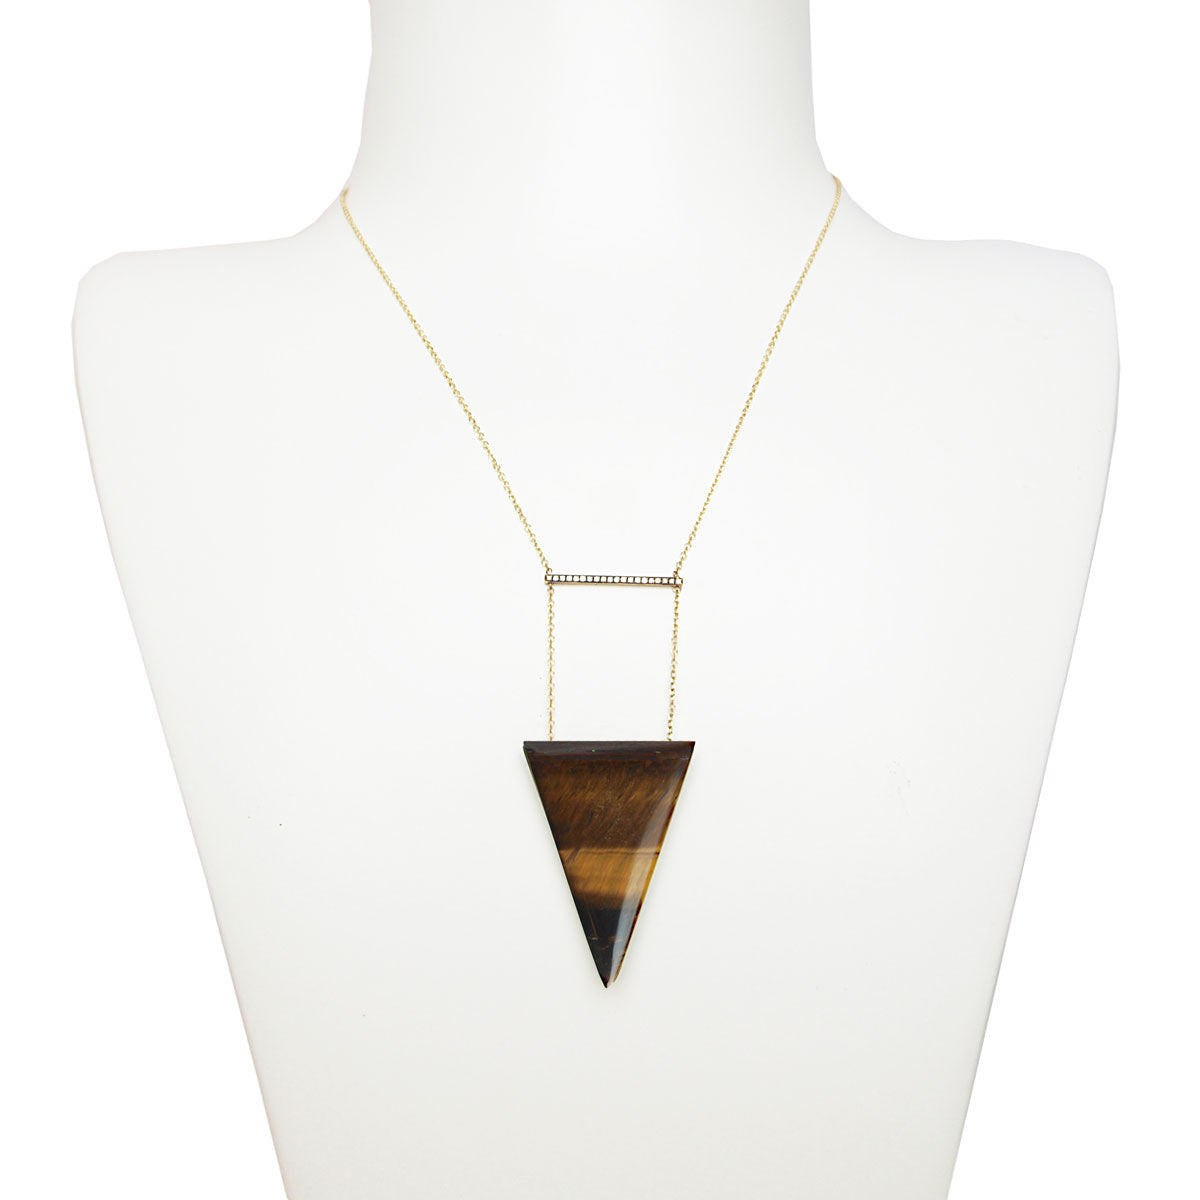 Tinos 9 kt Gold Necklace with Diamonds and Tiger's Eye